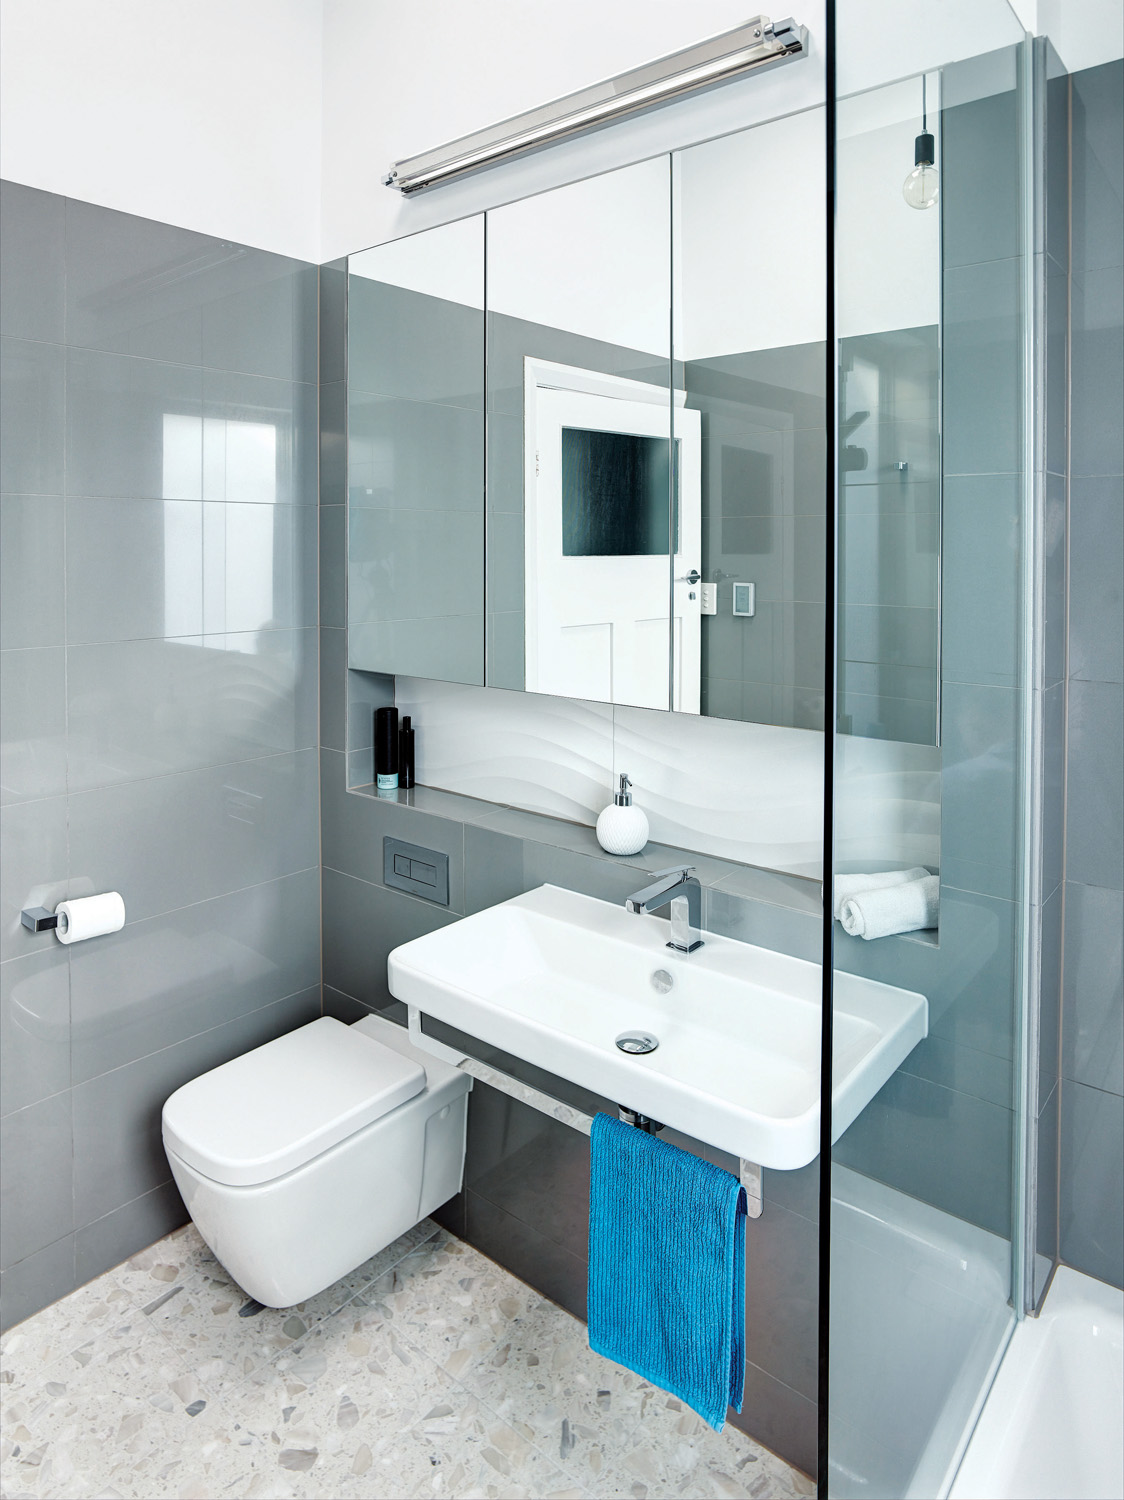 Award winning futuristic bathroom design completehome for Award winning bathroom designs